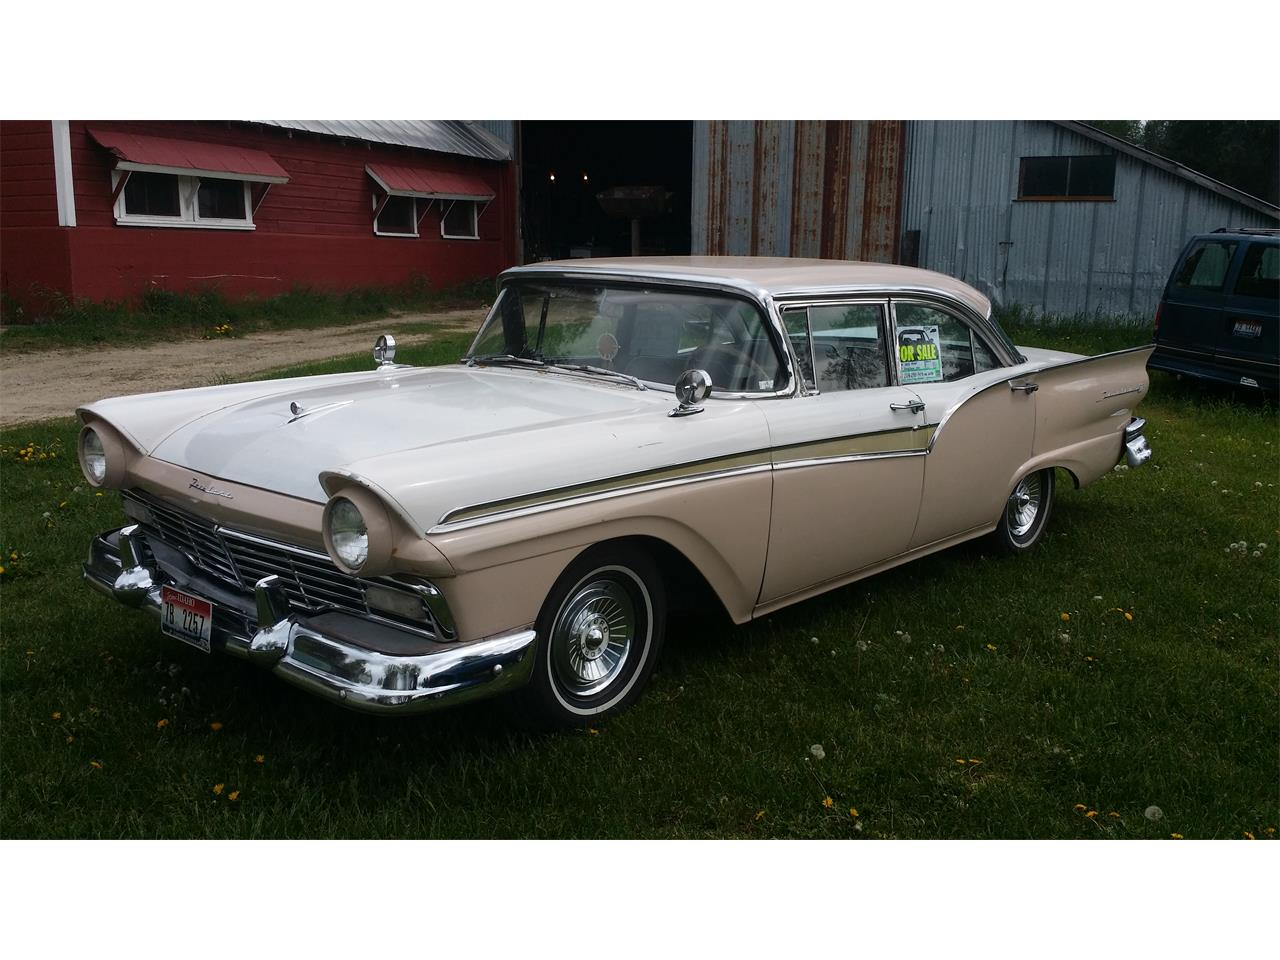 Large picture of 57 fairlane 500 lerp